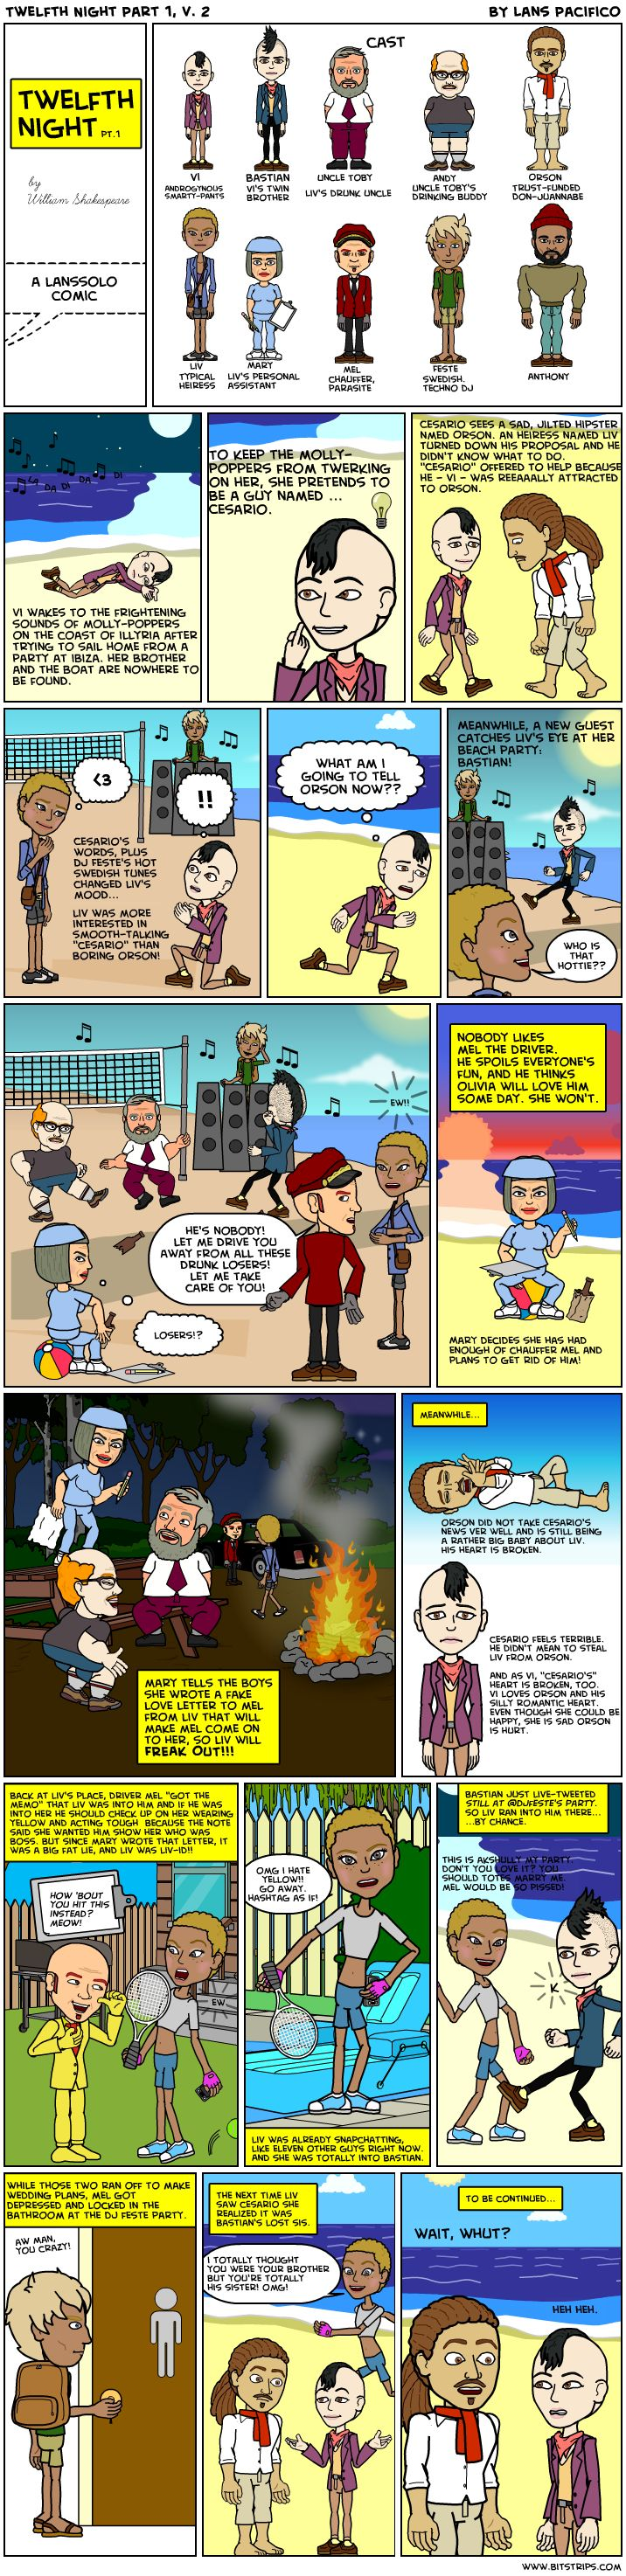 Winter 2013 cohort member Lans's awesome Bitstrip on Twelfth Night (part 1 of 2).: Member Lans S, Brit Lit, 2013 Cohort, Awesome Bitstrip, Cohort Member, English Literature, Lans S Awesome, Elnm Brit